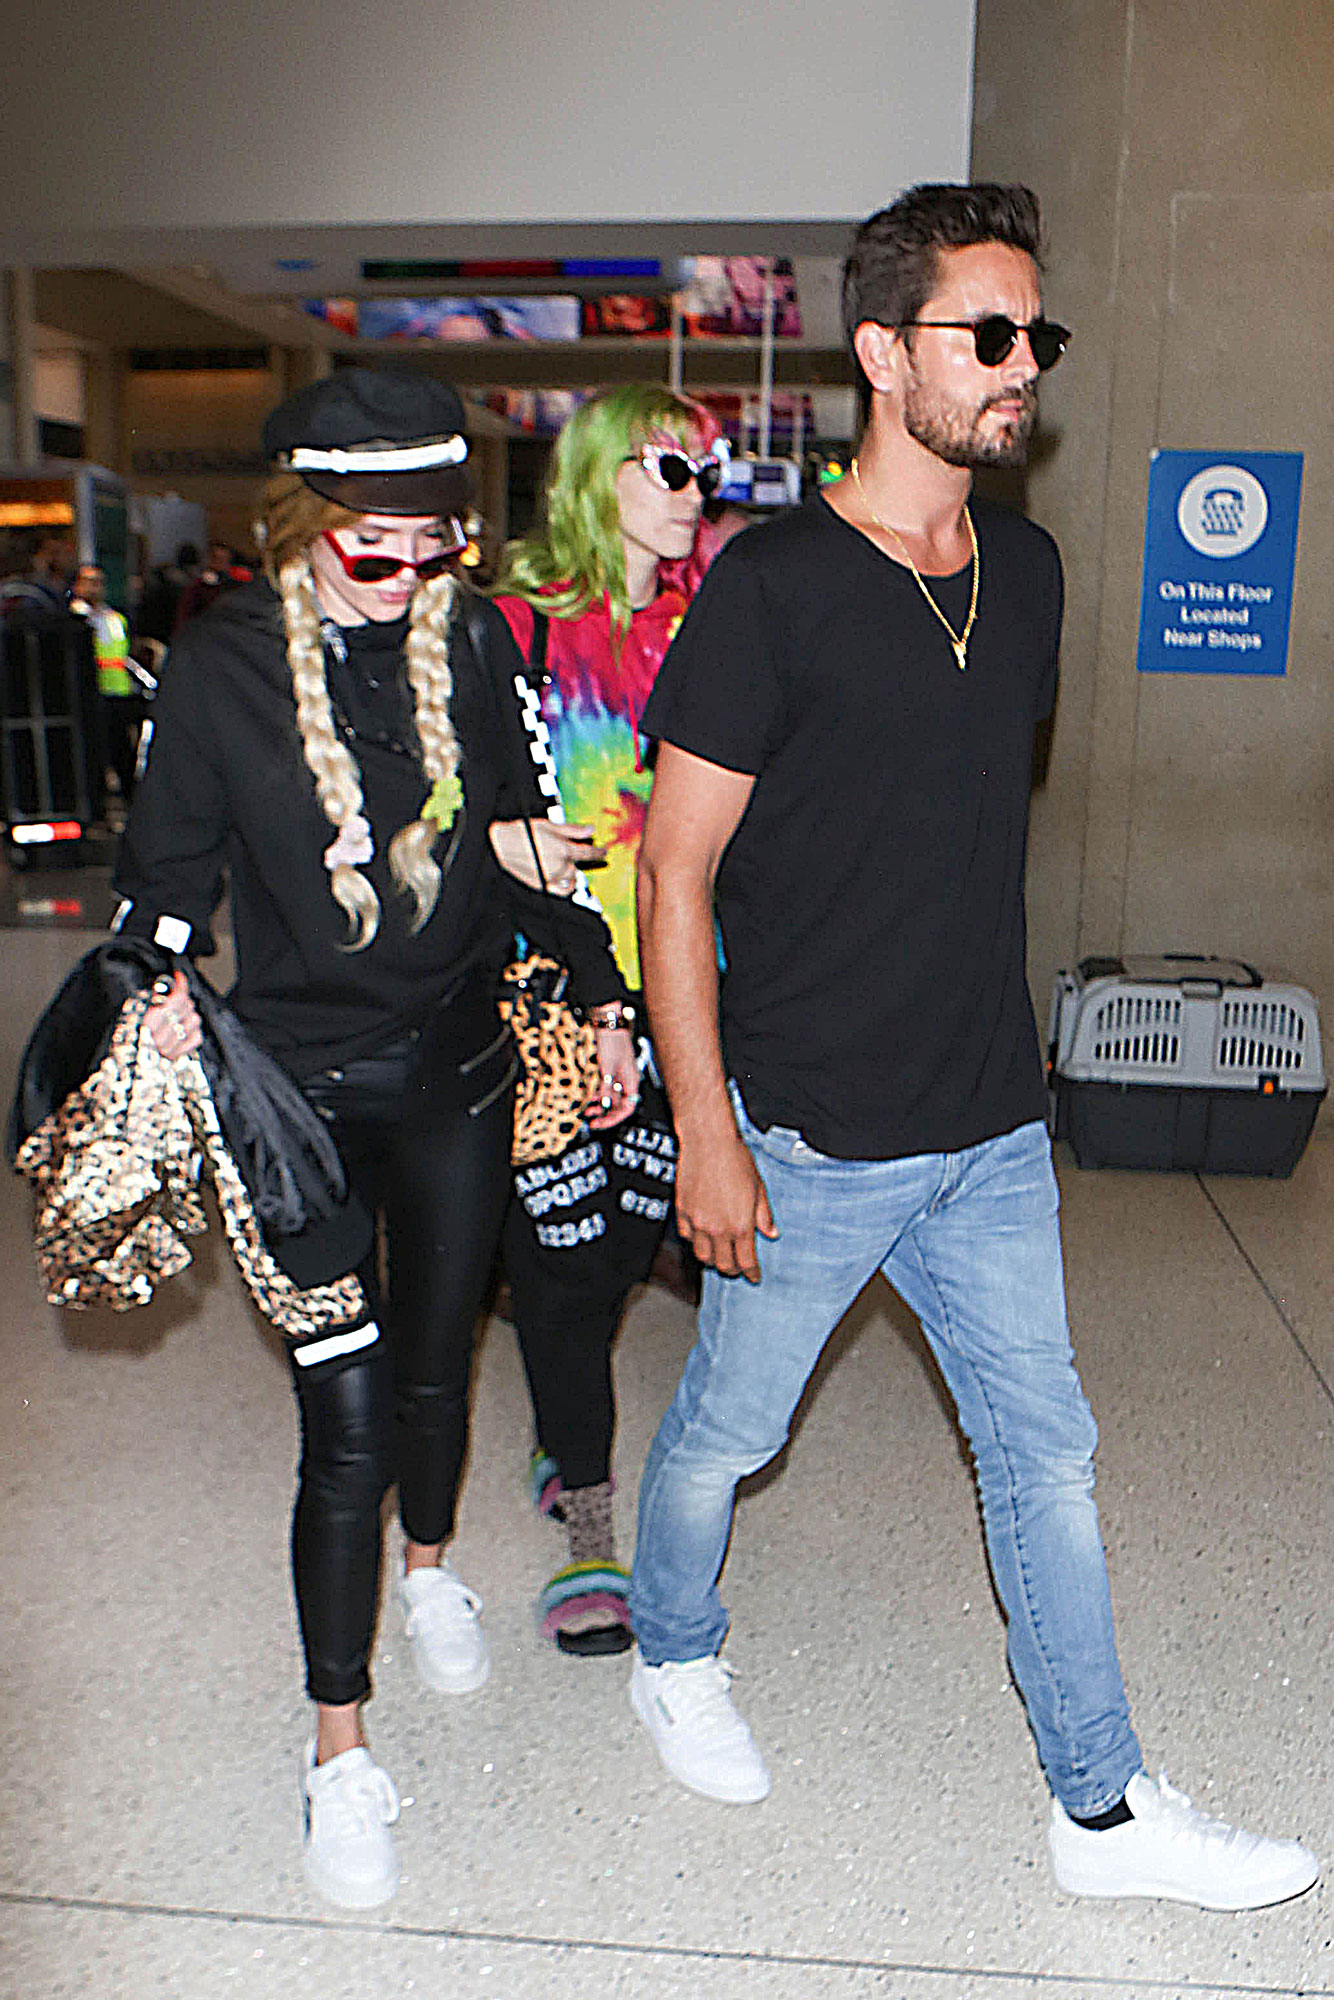 Scott Disick and Bella Thorne - Scott went on a spree of hookups and courtships in 2017, most notably with Bella Thorne , who later said the two never had sex . It did little to bring Scott and Kourtney close, however, with the two feuding over their respective hookups in an October 2017 episode of the show, in which Kim also mocked Scott for taking Thorne to Cannes.